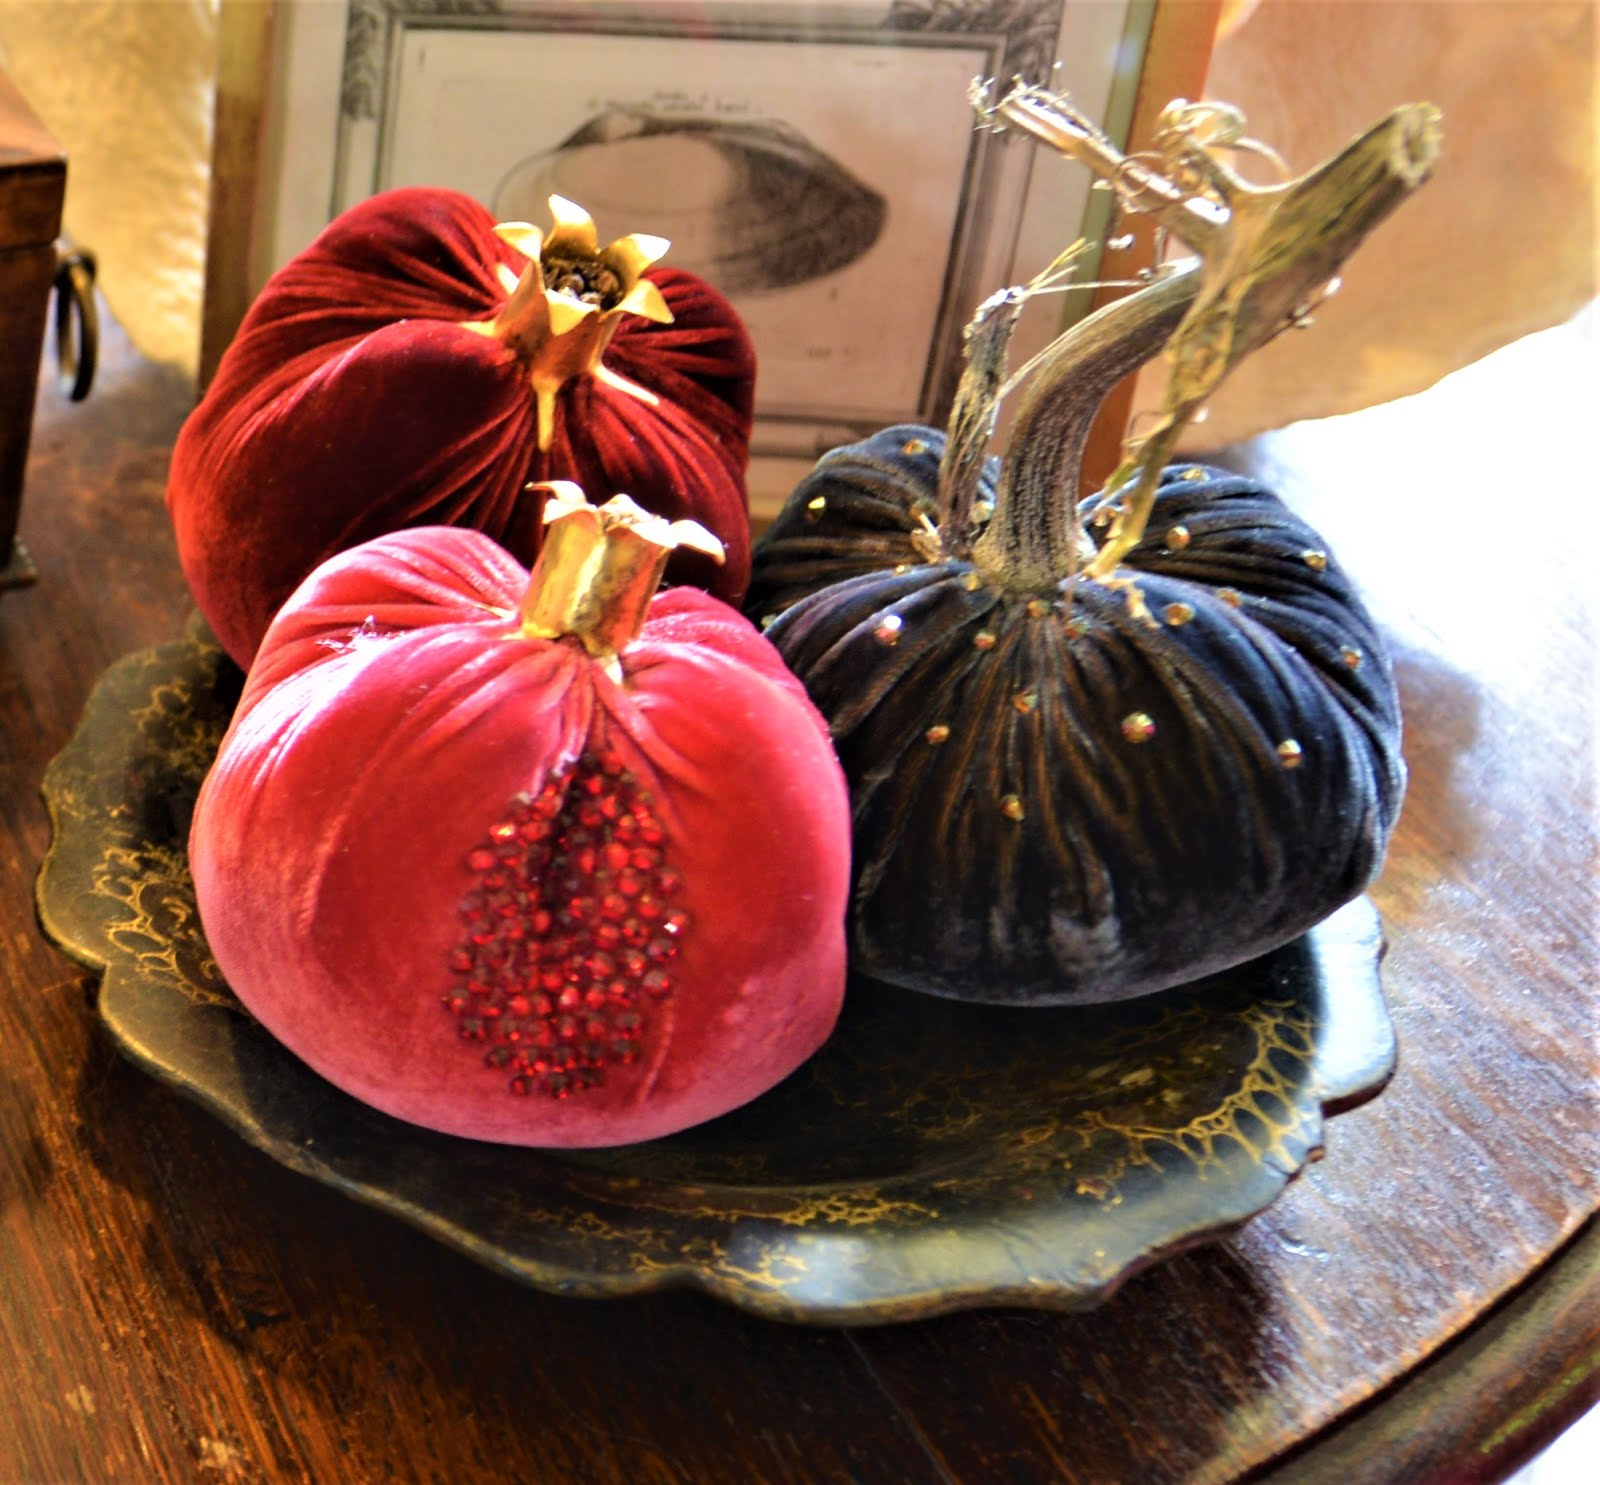 LOVEFEAST SHOP - VELVET POMEGRANATES!